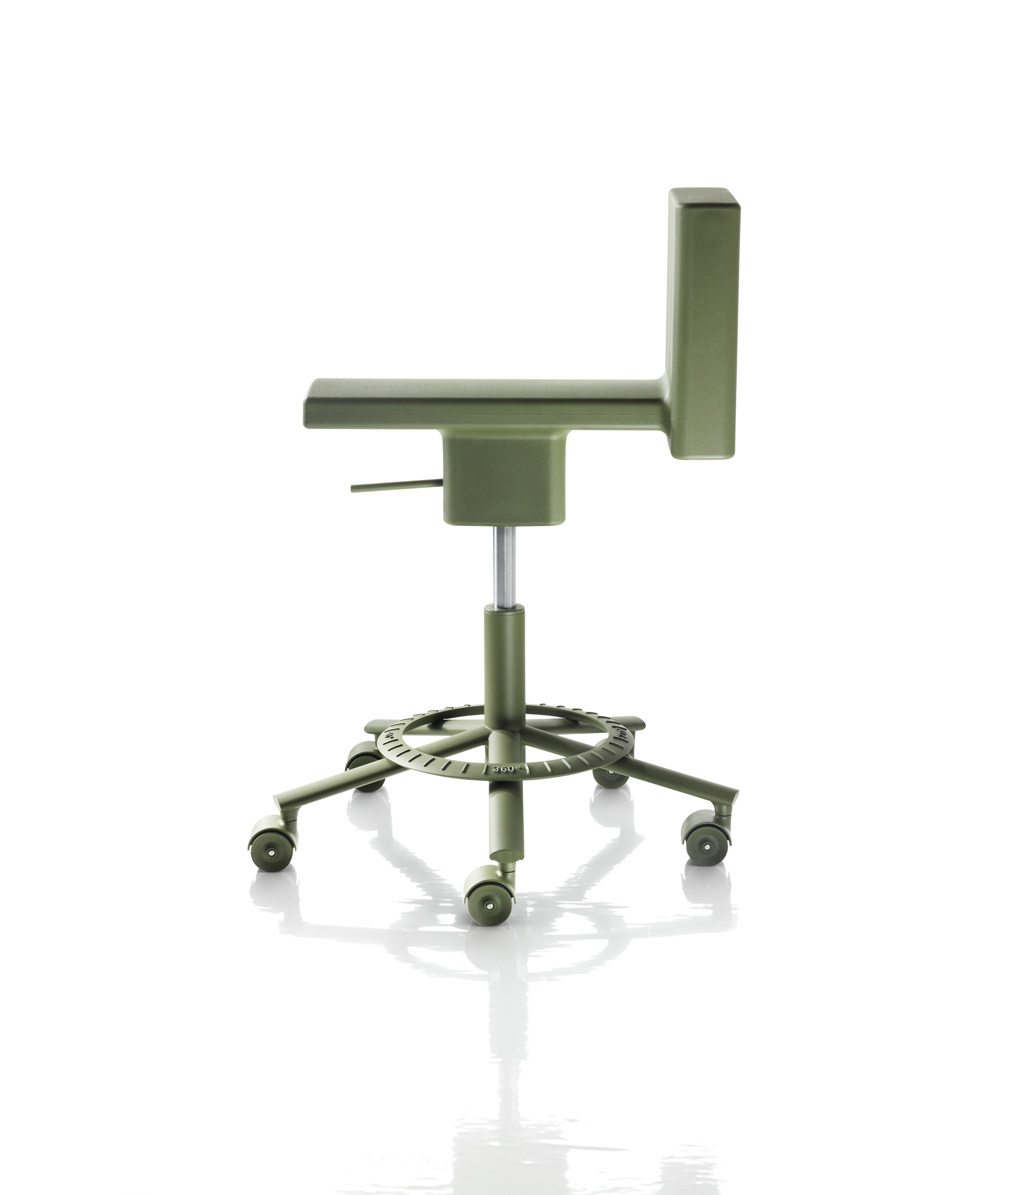 Konstantin Grcic 360 176 Chair